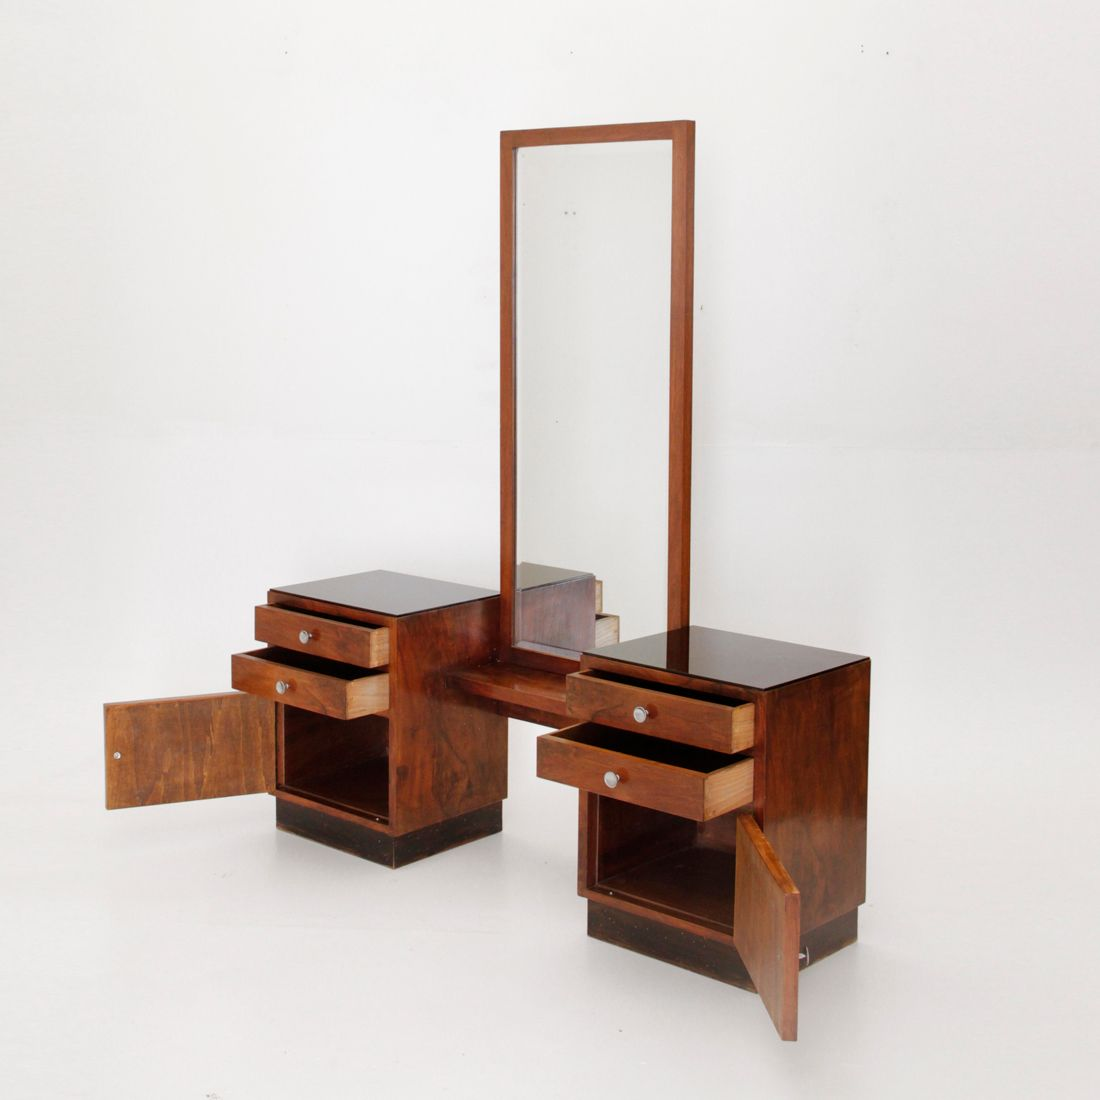 Dressing table and mirror 1950s for sale at pamono for Vanity table and mirror for sale